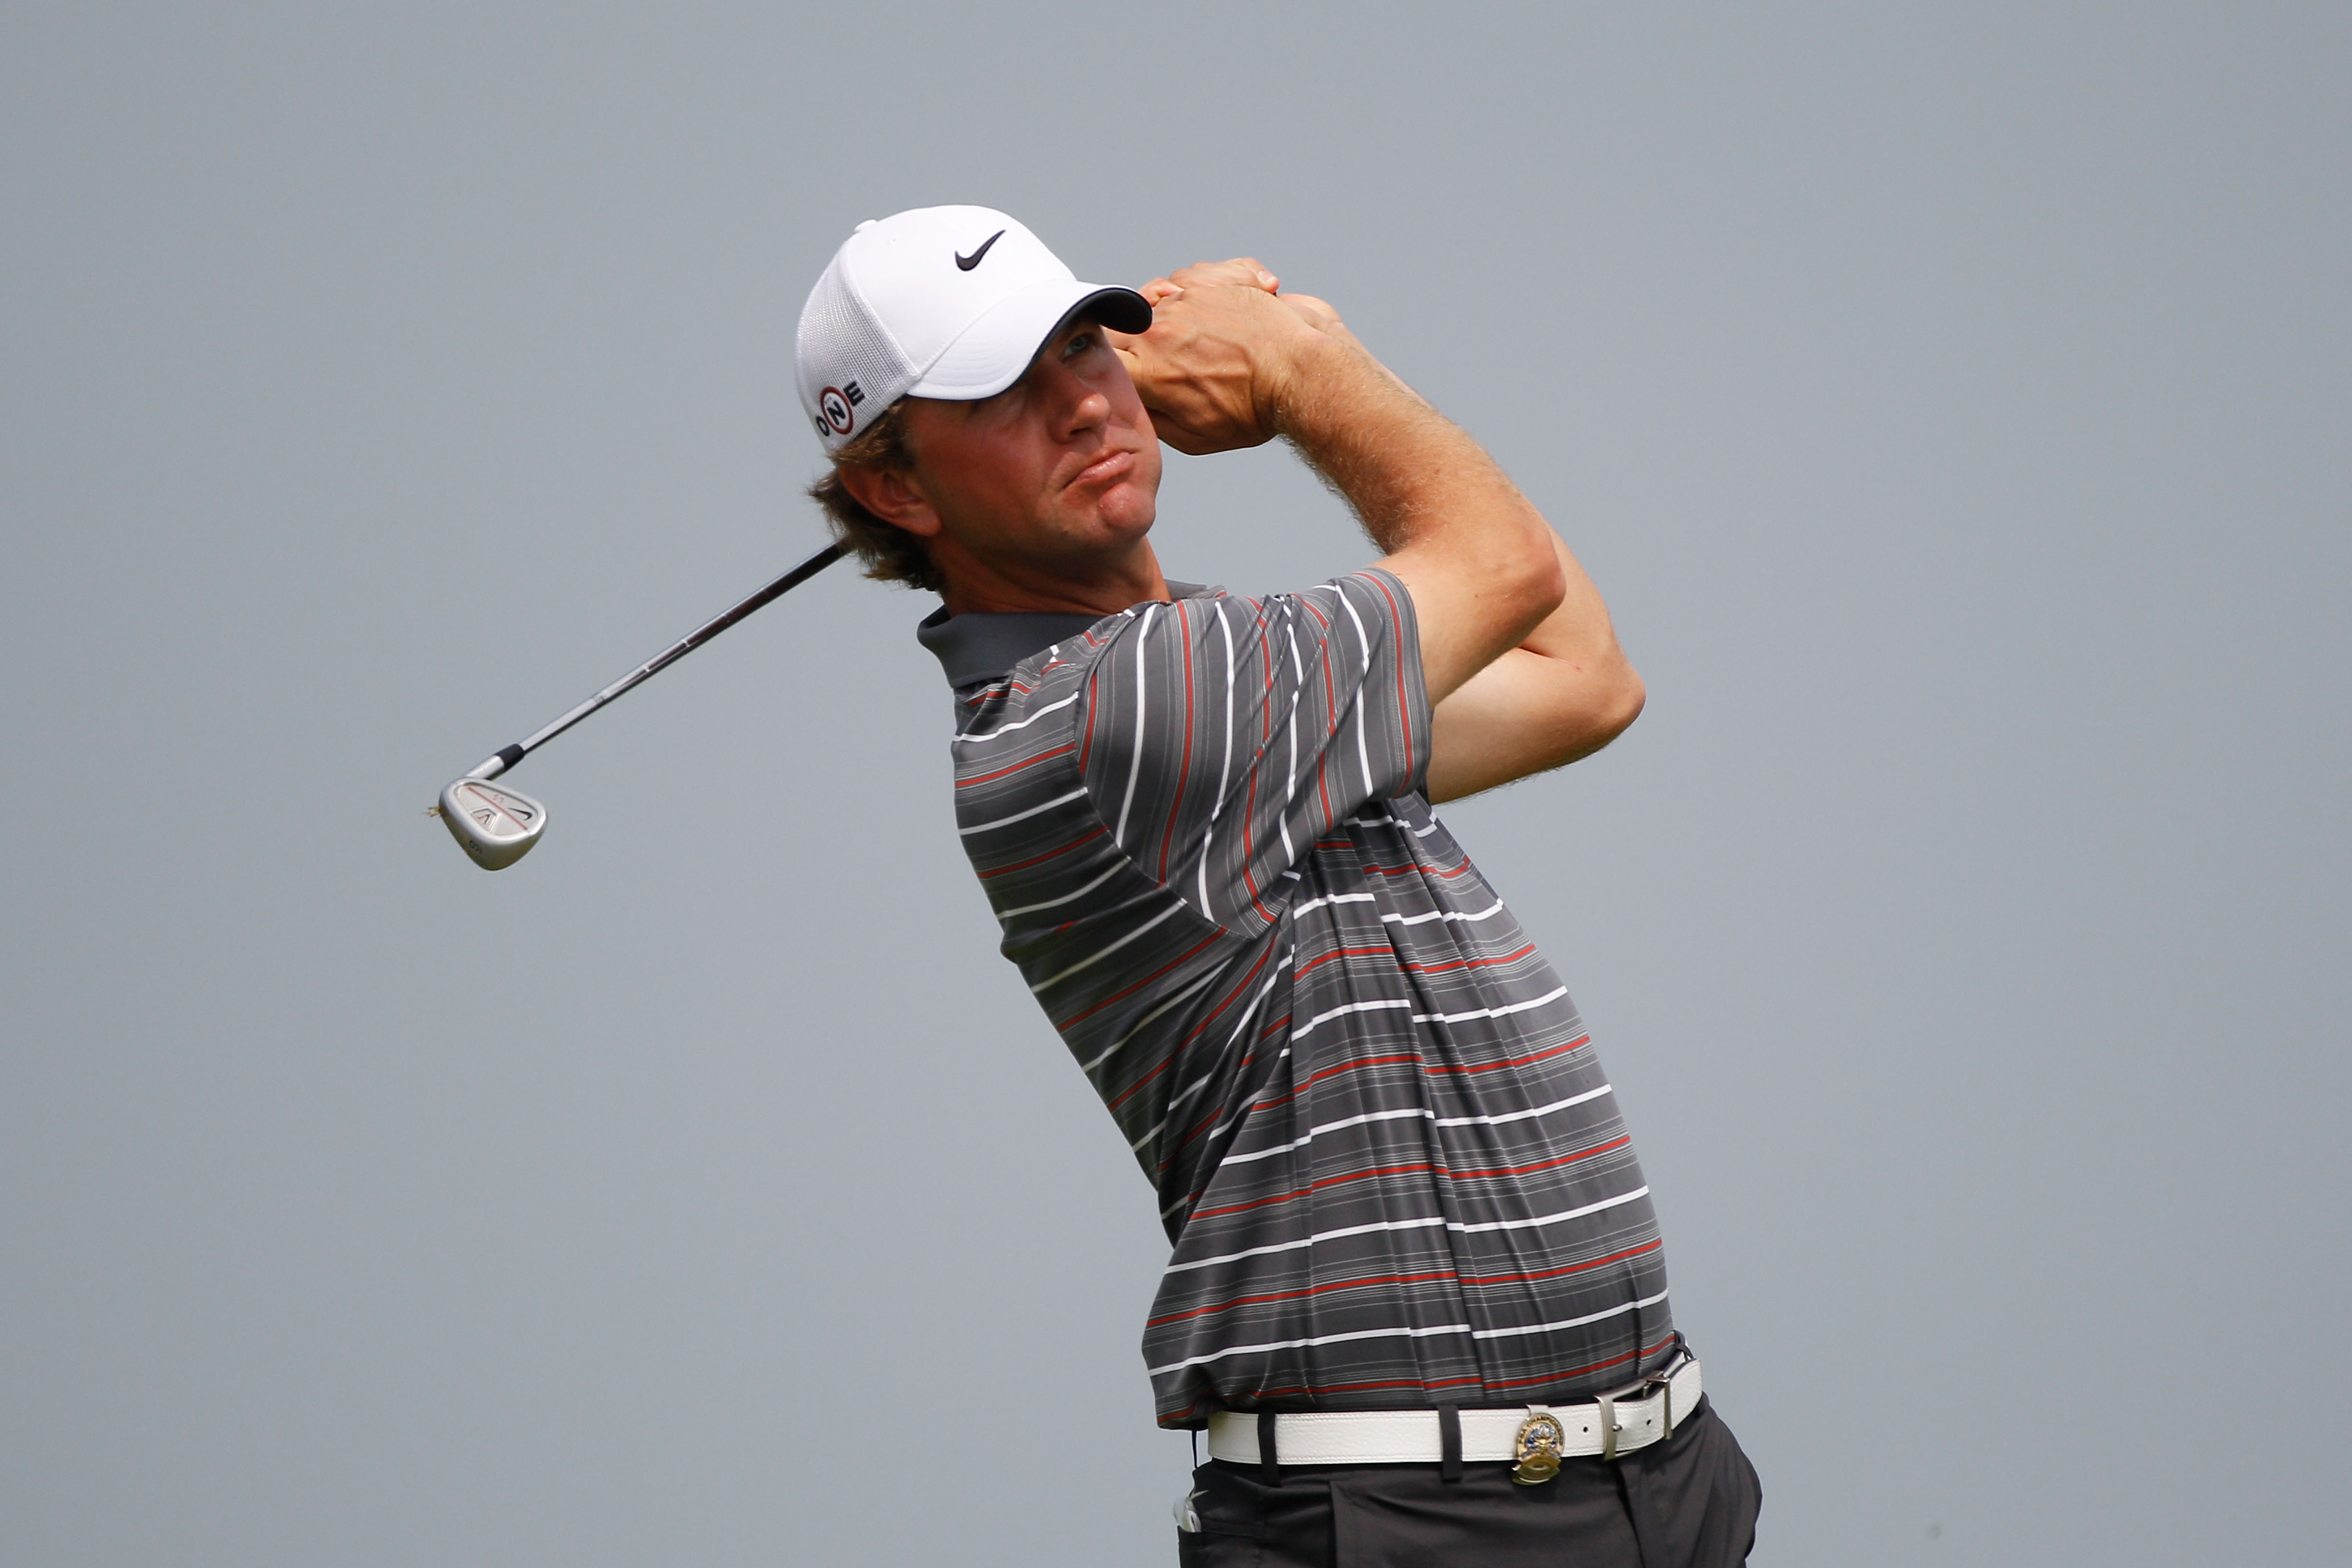 KOHLER, WI - AUGUST 10:  Lucas Glover in action during a practice round prior to the start of the 92nd PGA Championship on the Straits Course at Whistling Straits on August 10, 2010 in Kohler, Wisconsin.  (Photo by Chris Graythen/Getty Images)